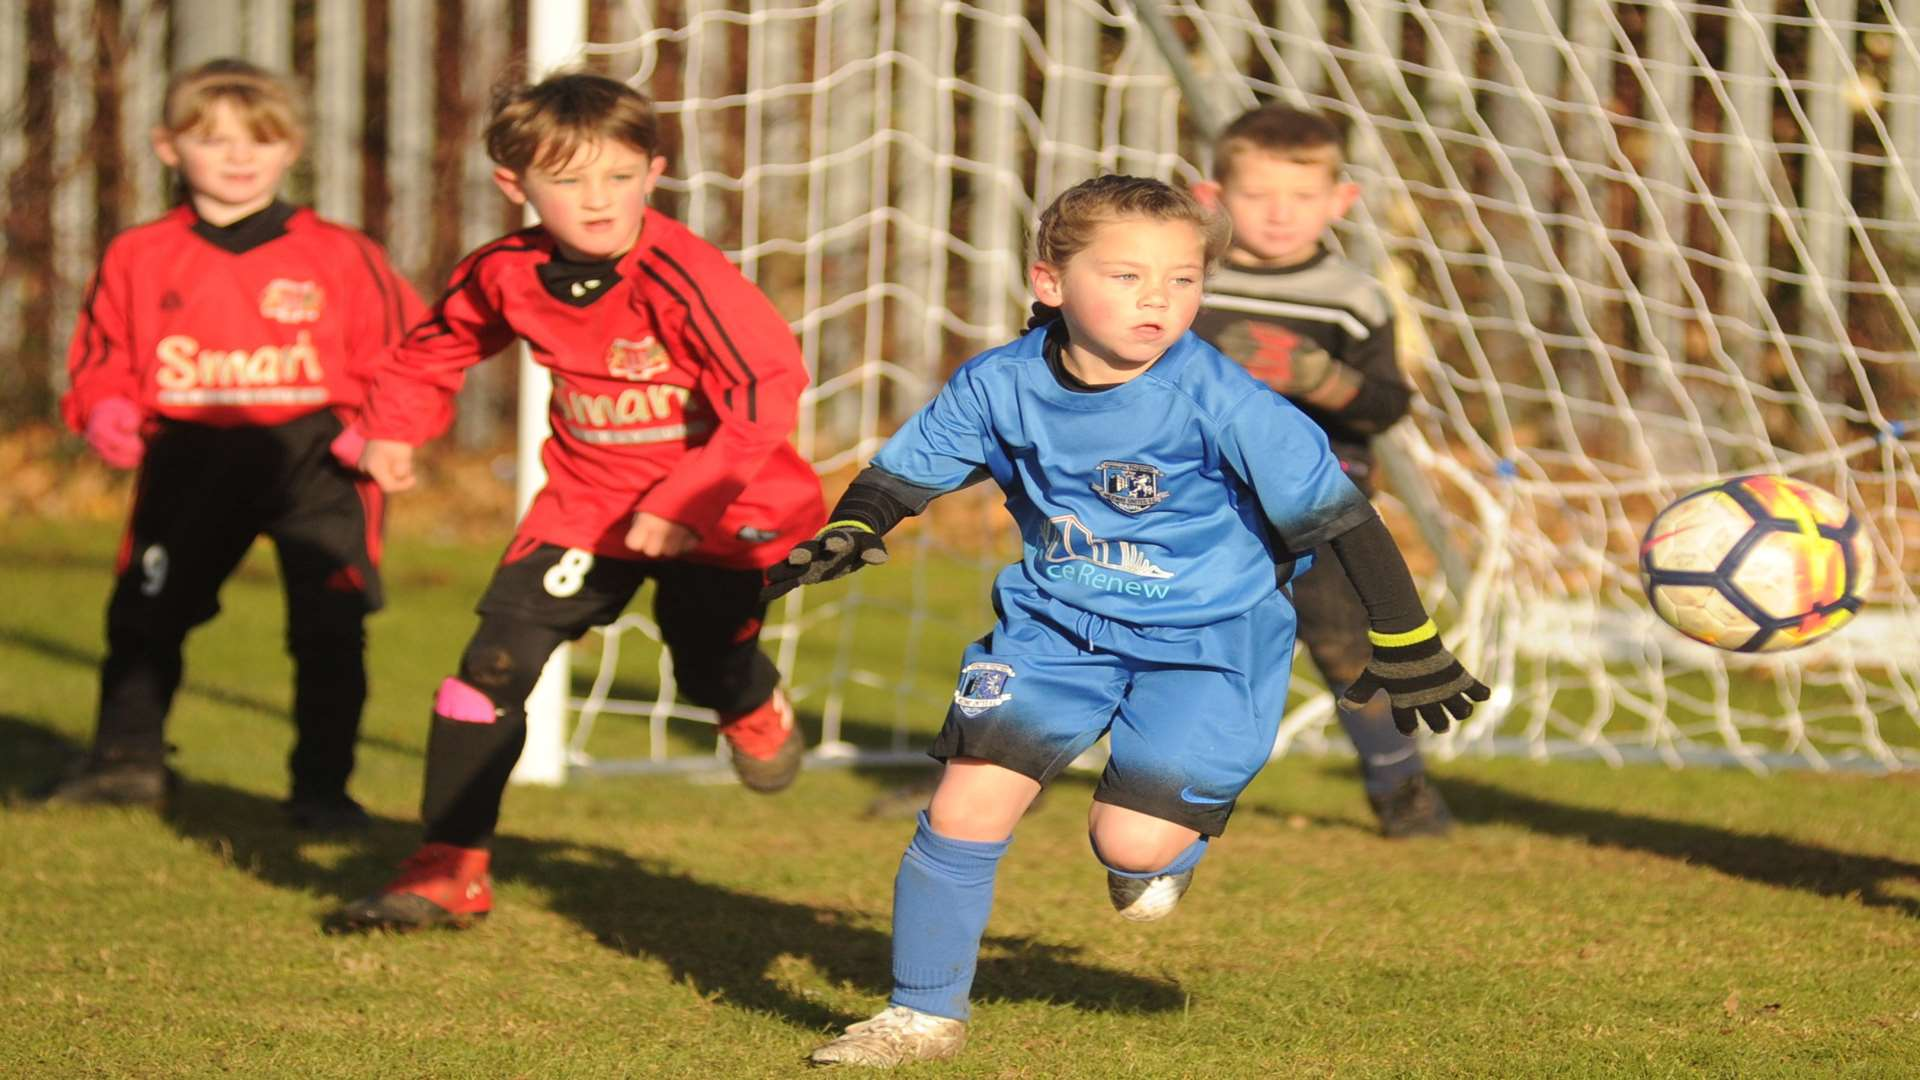 Woodcoombe Youth under-7s on the charge against Medway United East under-7s Picture: Steve Crispe